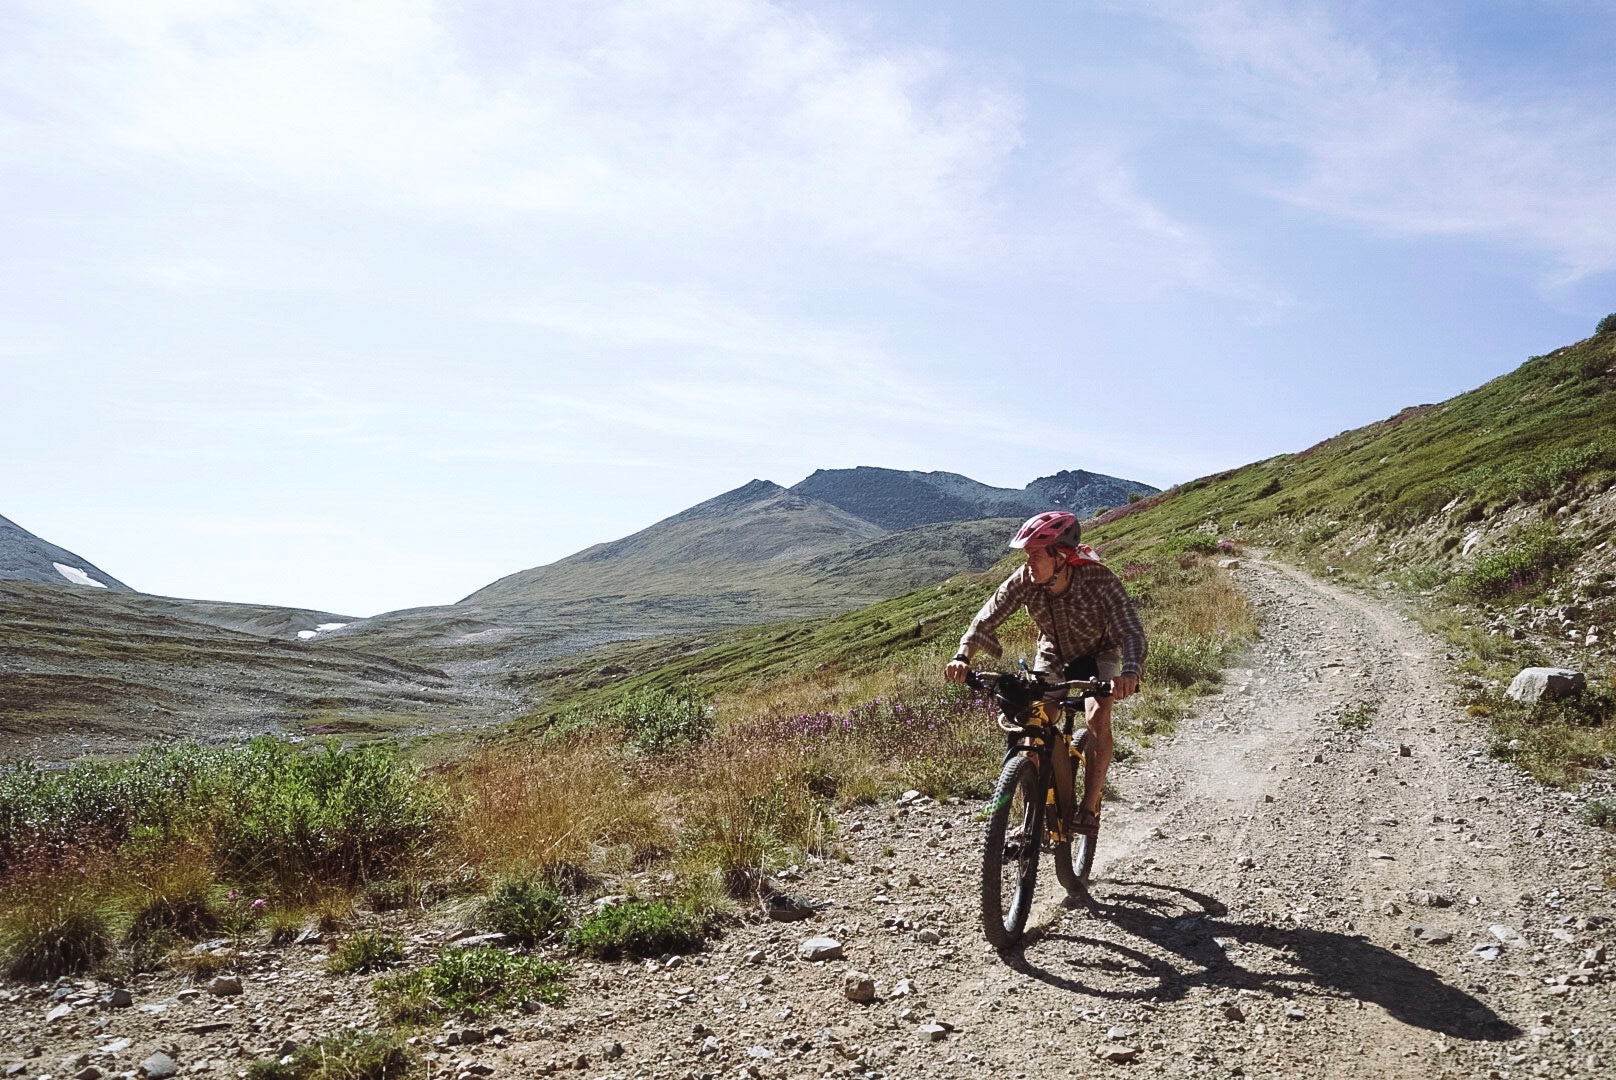 Yukon Dirt: Mines and Mountain Bikes in the Far North